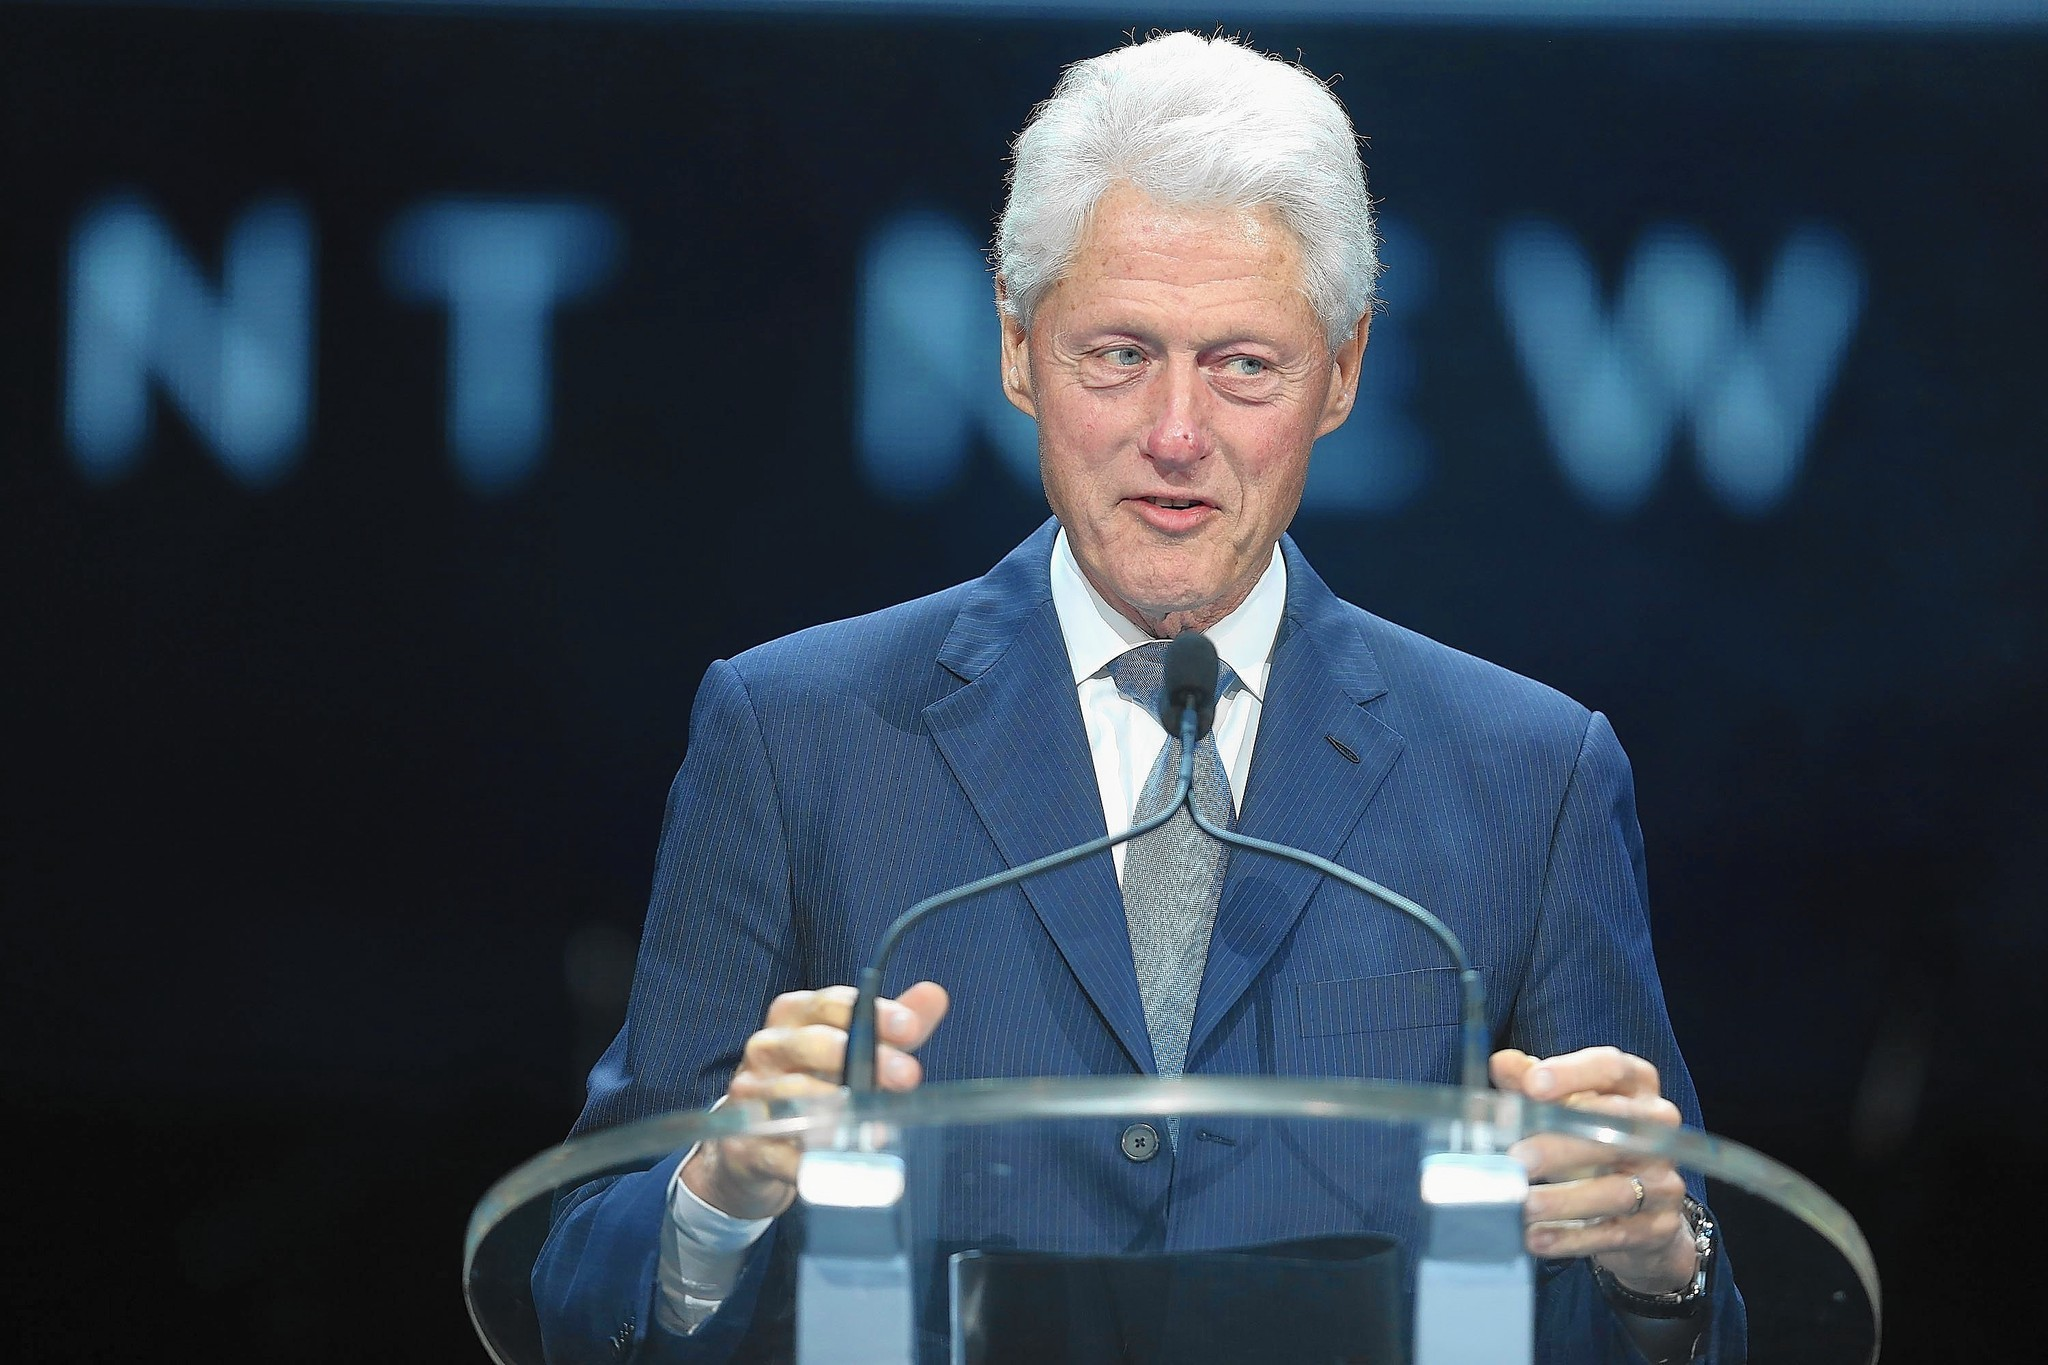 bill clinton hits chicago to raise money for wife s presidential bill clinton hits chicago to raise money for wife s presidential bid chicago tribune